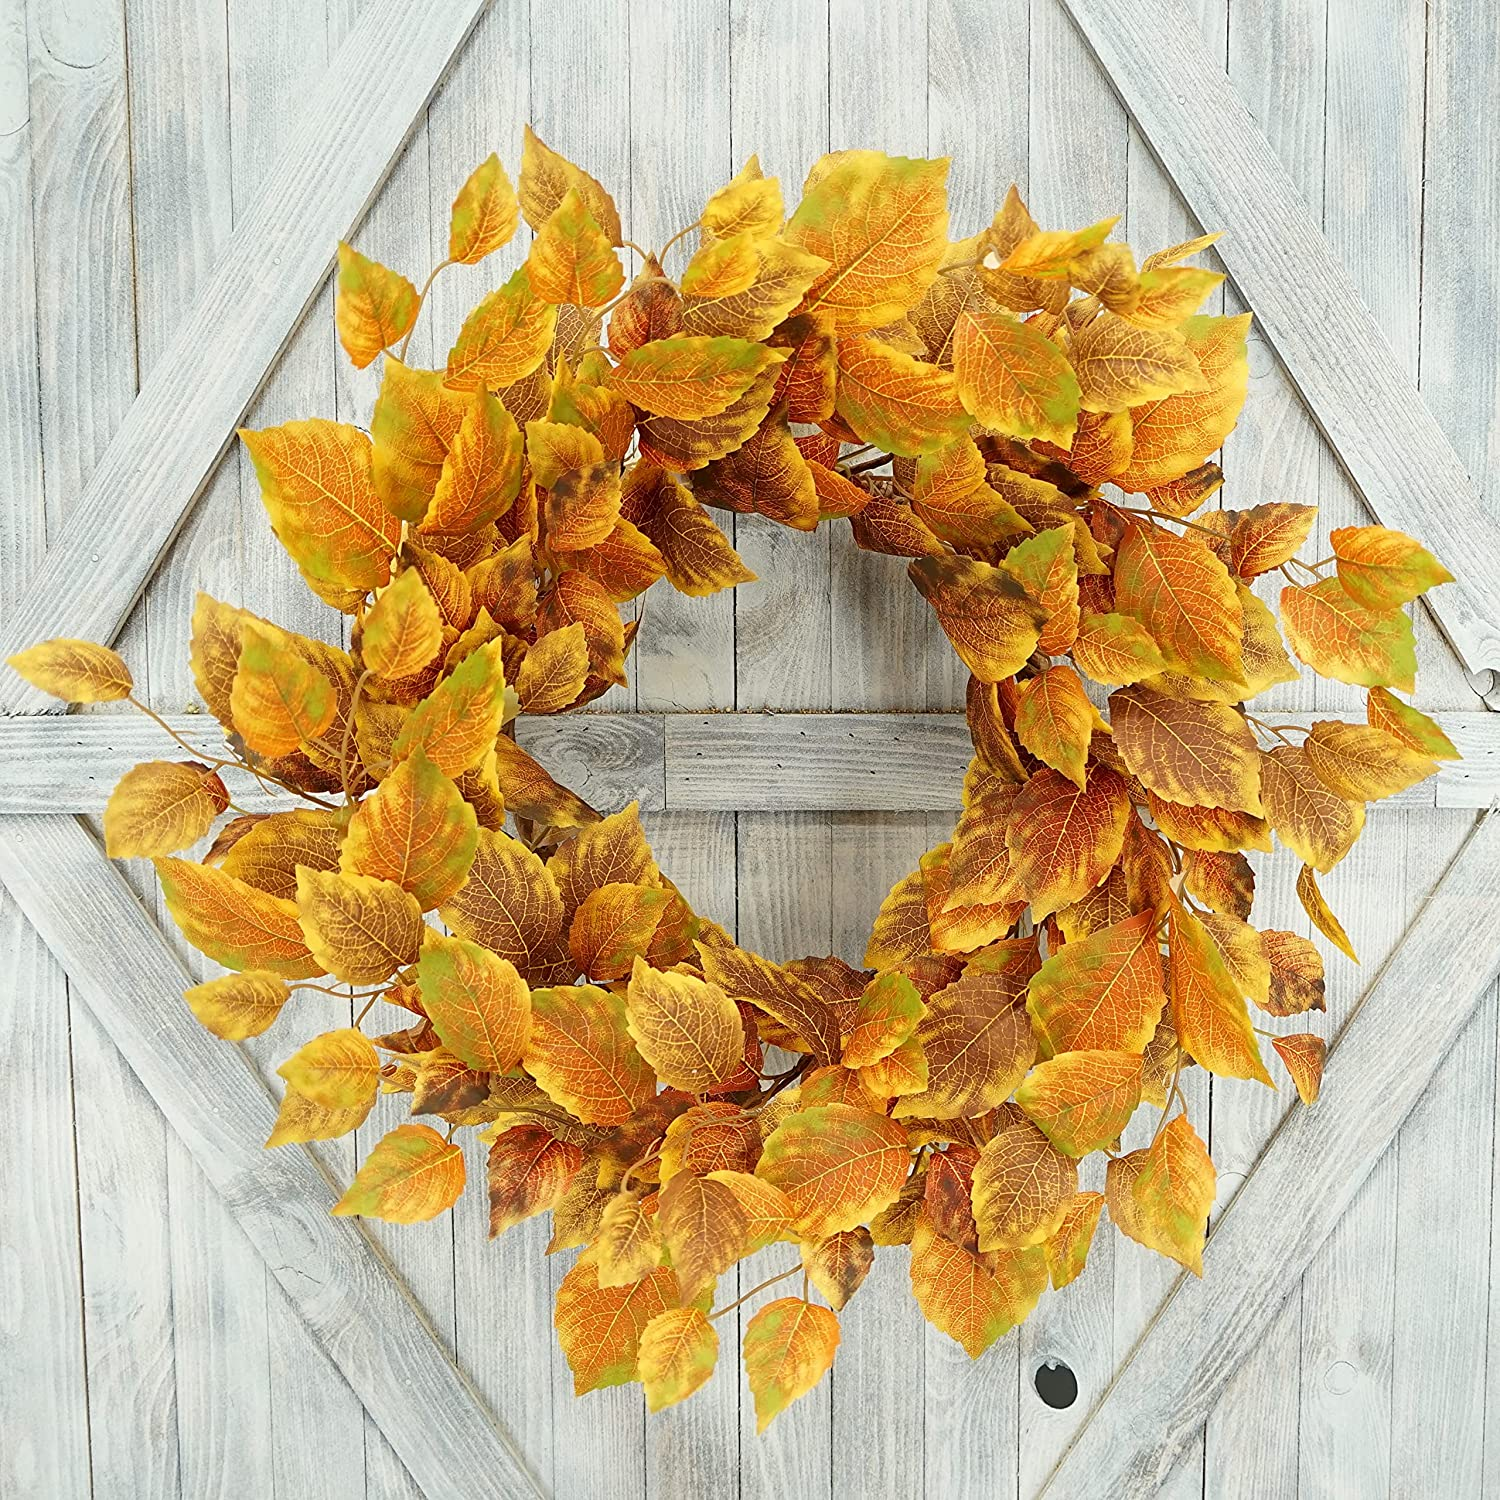 AMF0RESJ Artificial Fall Wreath for Front Door Autumn Door Wreath Harvest Wreath 20 inches with Orange and Rusty Birch Leaves for Indoor Outdoor Farmhouse Home Wall Window Festival Wedding Decor